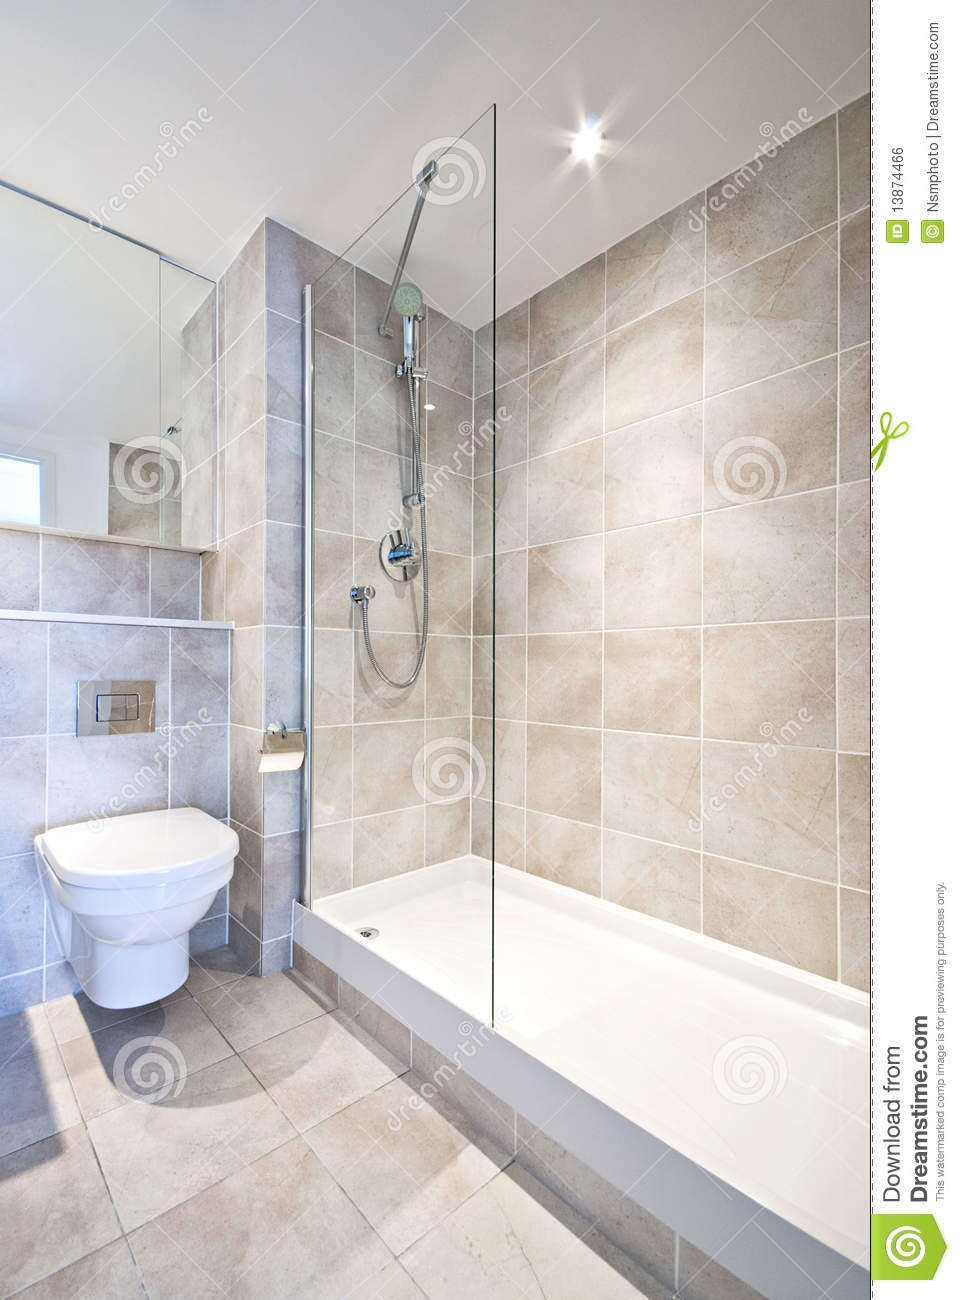 Salle De Bain Moderne Avec Douche Of Modern En Suite Bathroom With Large Shower Royalty Free